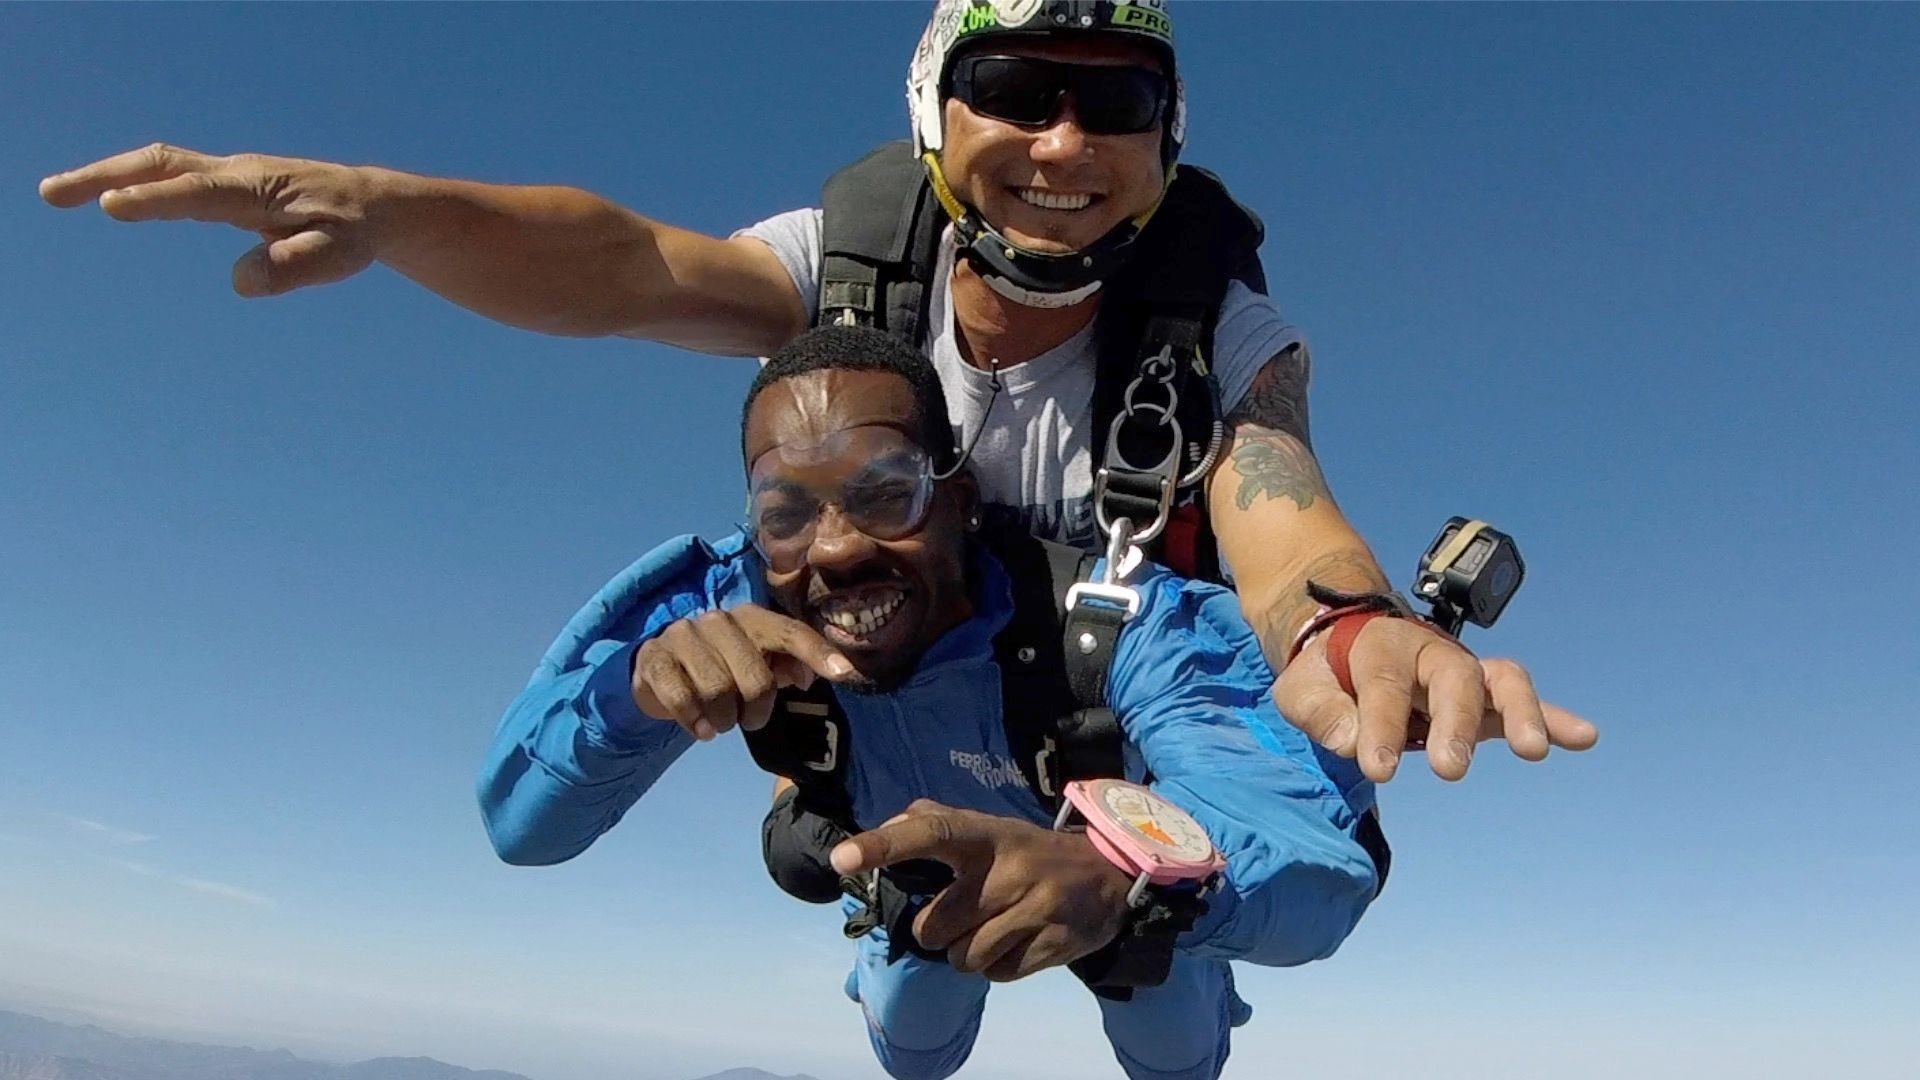 first time skydiving student points at camera in freefall